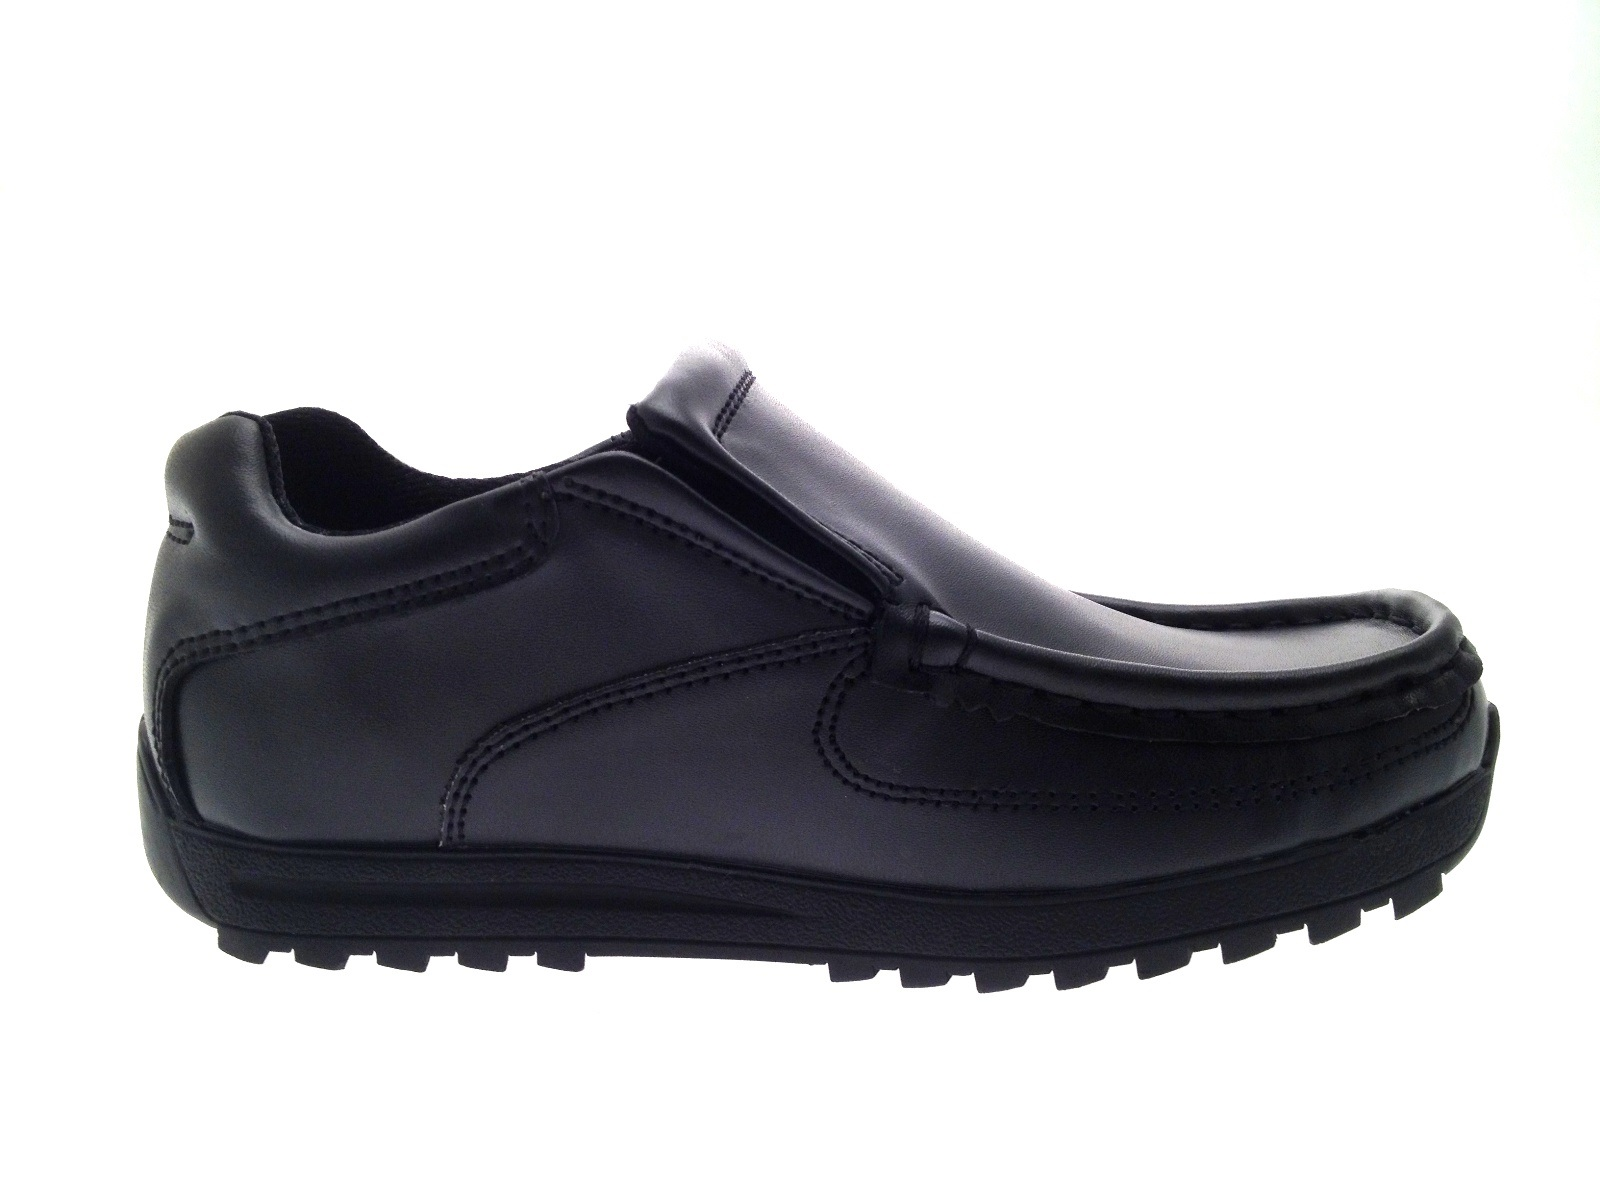 Mens Boys Kids Black Leather School Shoes Work Loafers